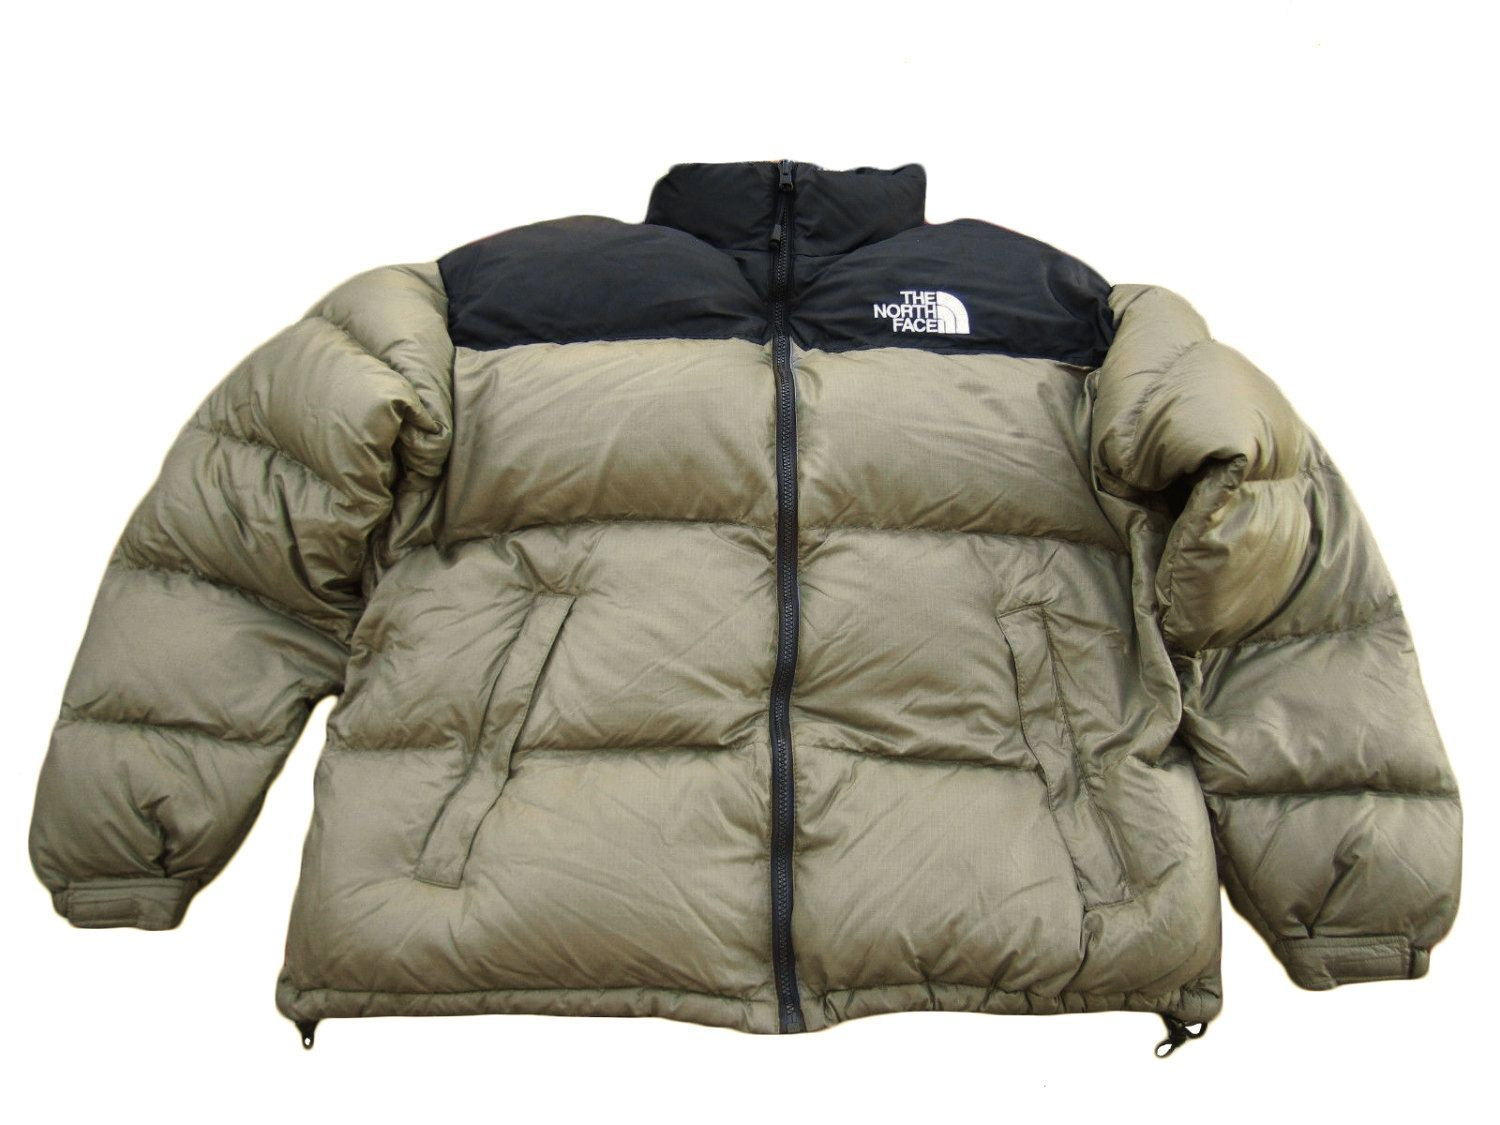 258abcaeace4 ... usa the north face mens down nuptse 700 puffa puffer jacket beige black  size s by